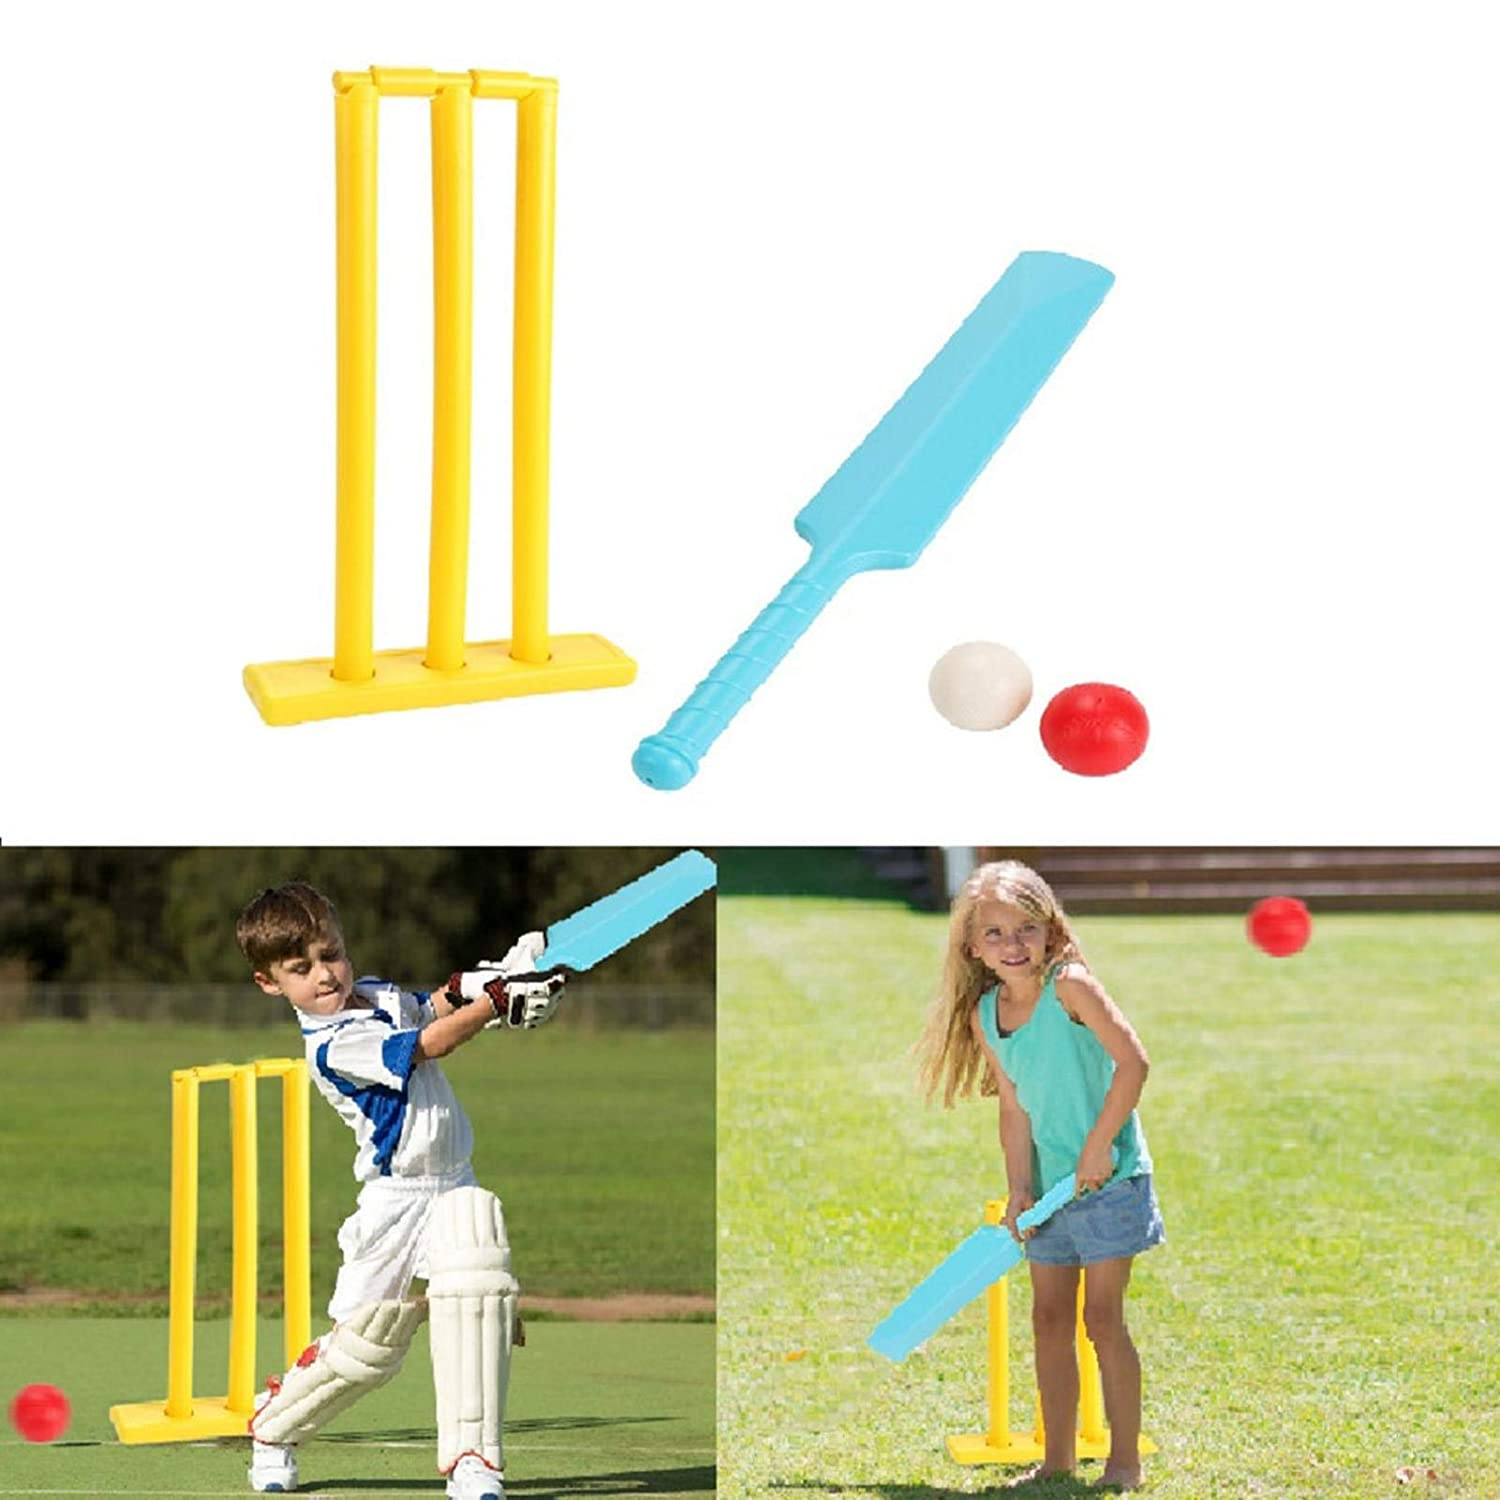 Kids Cricket Set, Cricket Bat and Ball Beach Wicket Stand Kit, Parent-Child Sports Interaction Hand-Eye Coordination Cultivation Sports Game for Backyard Lawn Playground